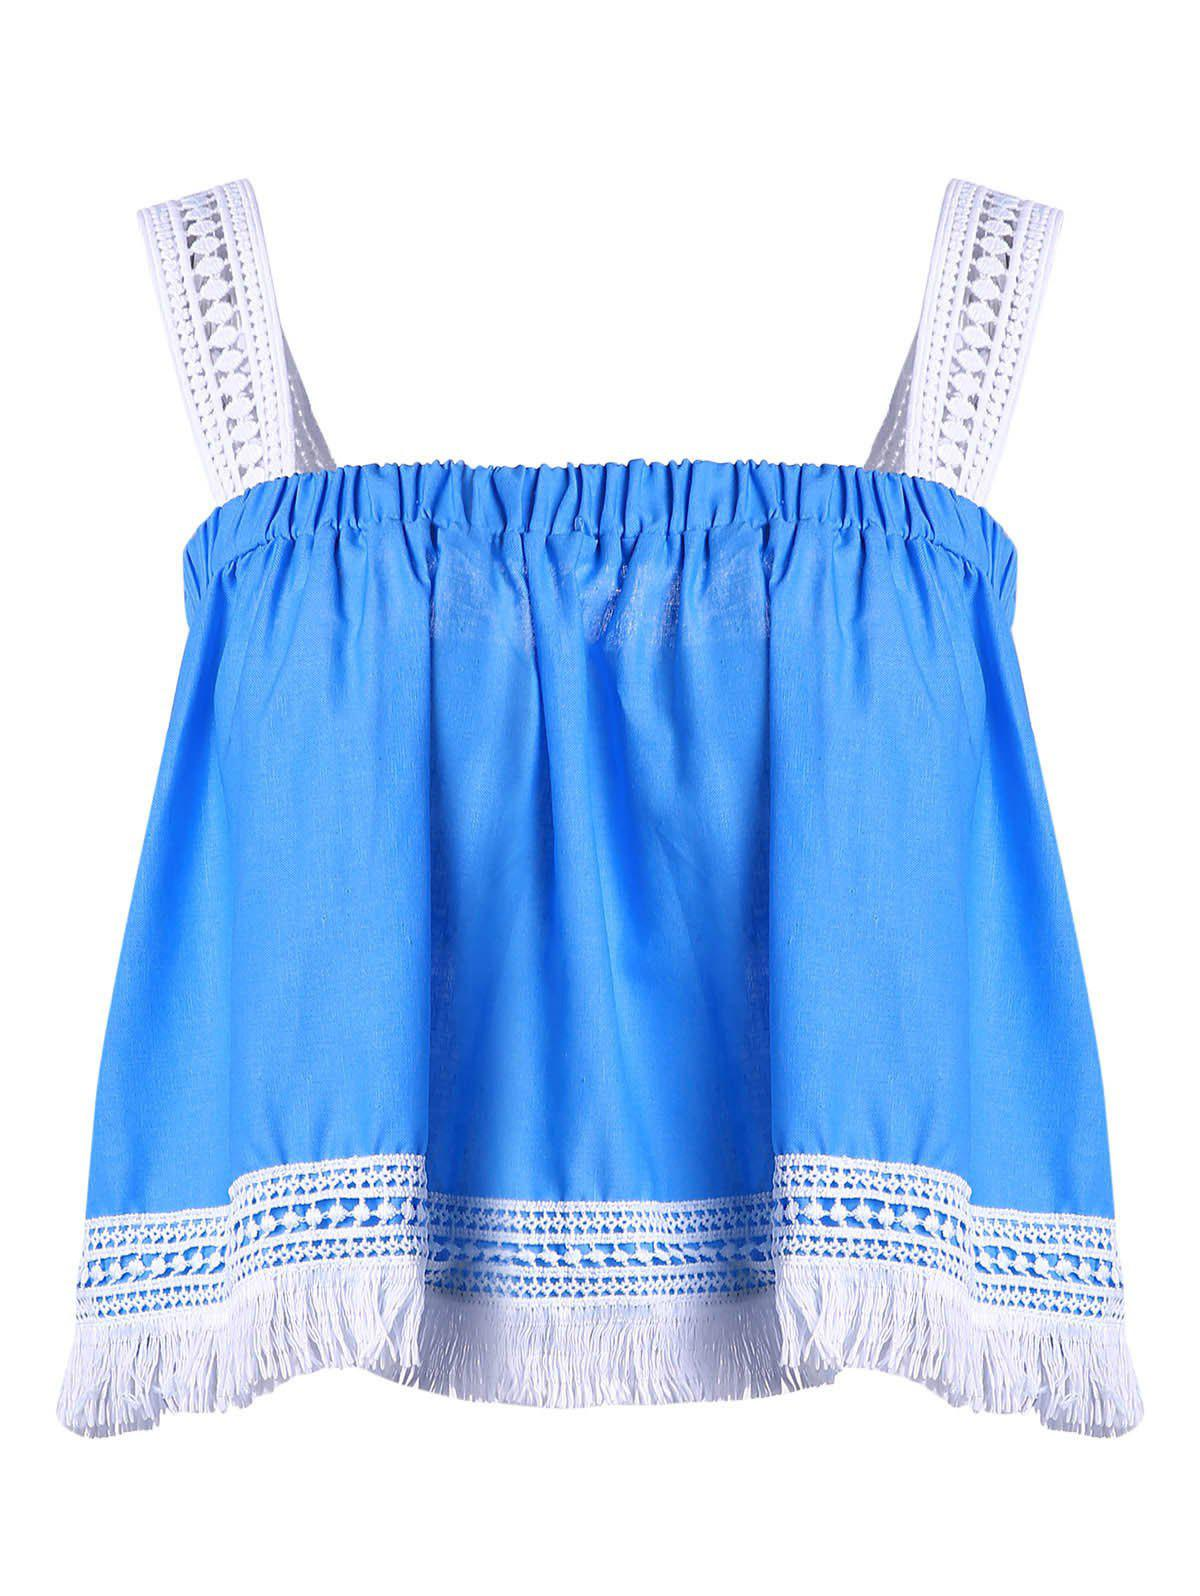 Trendy Spaghetti Strap Lace Tassles Crop Top For Women - BLUE/WHITE S